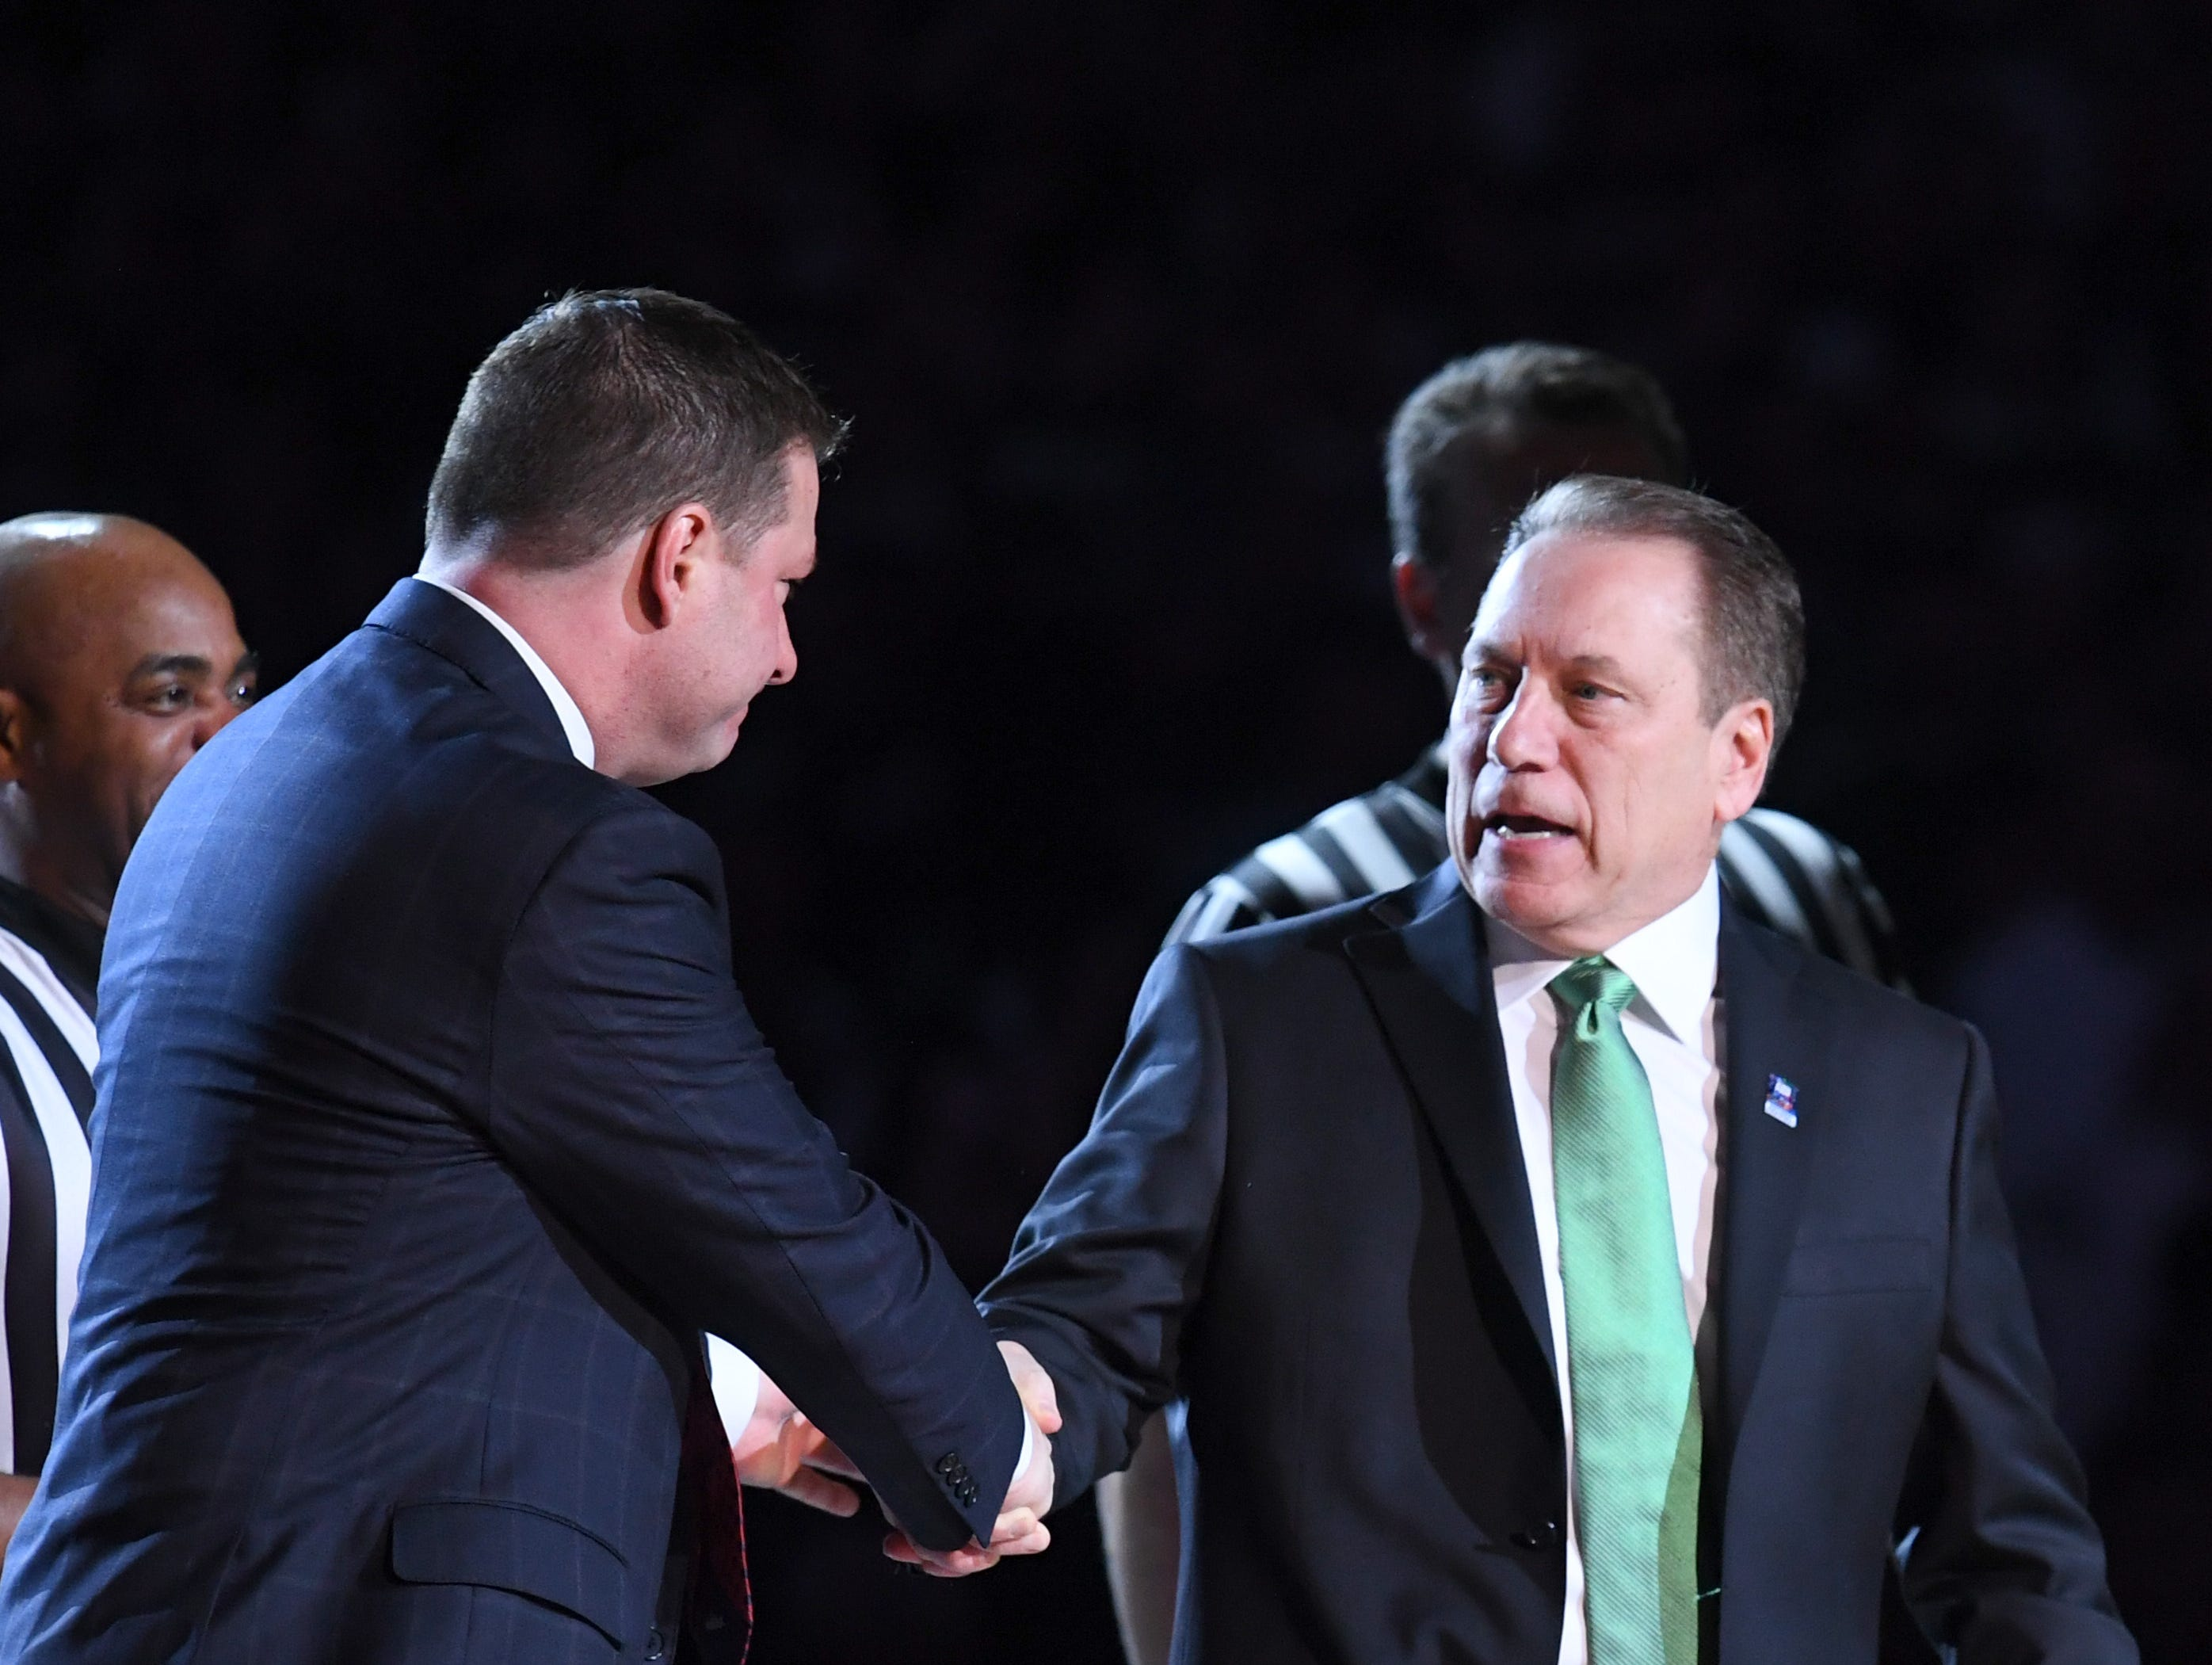 Apr 6, 2019; Minneapolis, MN, USA; Michigan State Spartans head coach Tom Izzo (right) shakes hands with Texas Tech Red Raiders head coach Chris Beard prior to the start of game 2 in the semifinals of the 2019 men's Final Four at US Bank Stadium. Mandatory Credit: Robert Deutsch-USA TODAY Sports